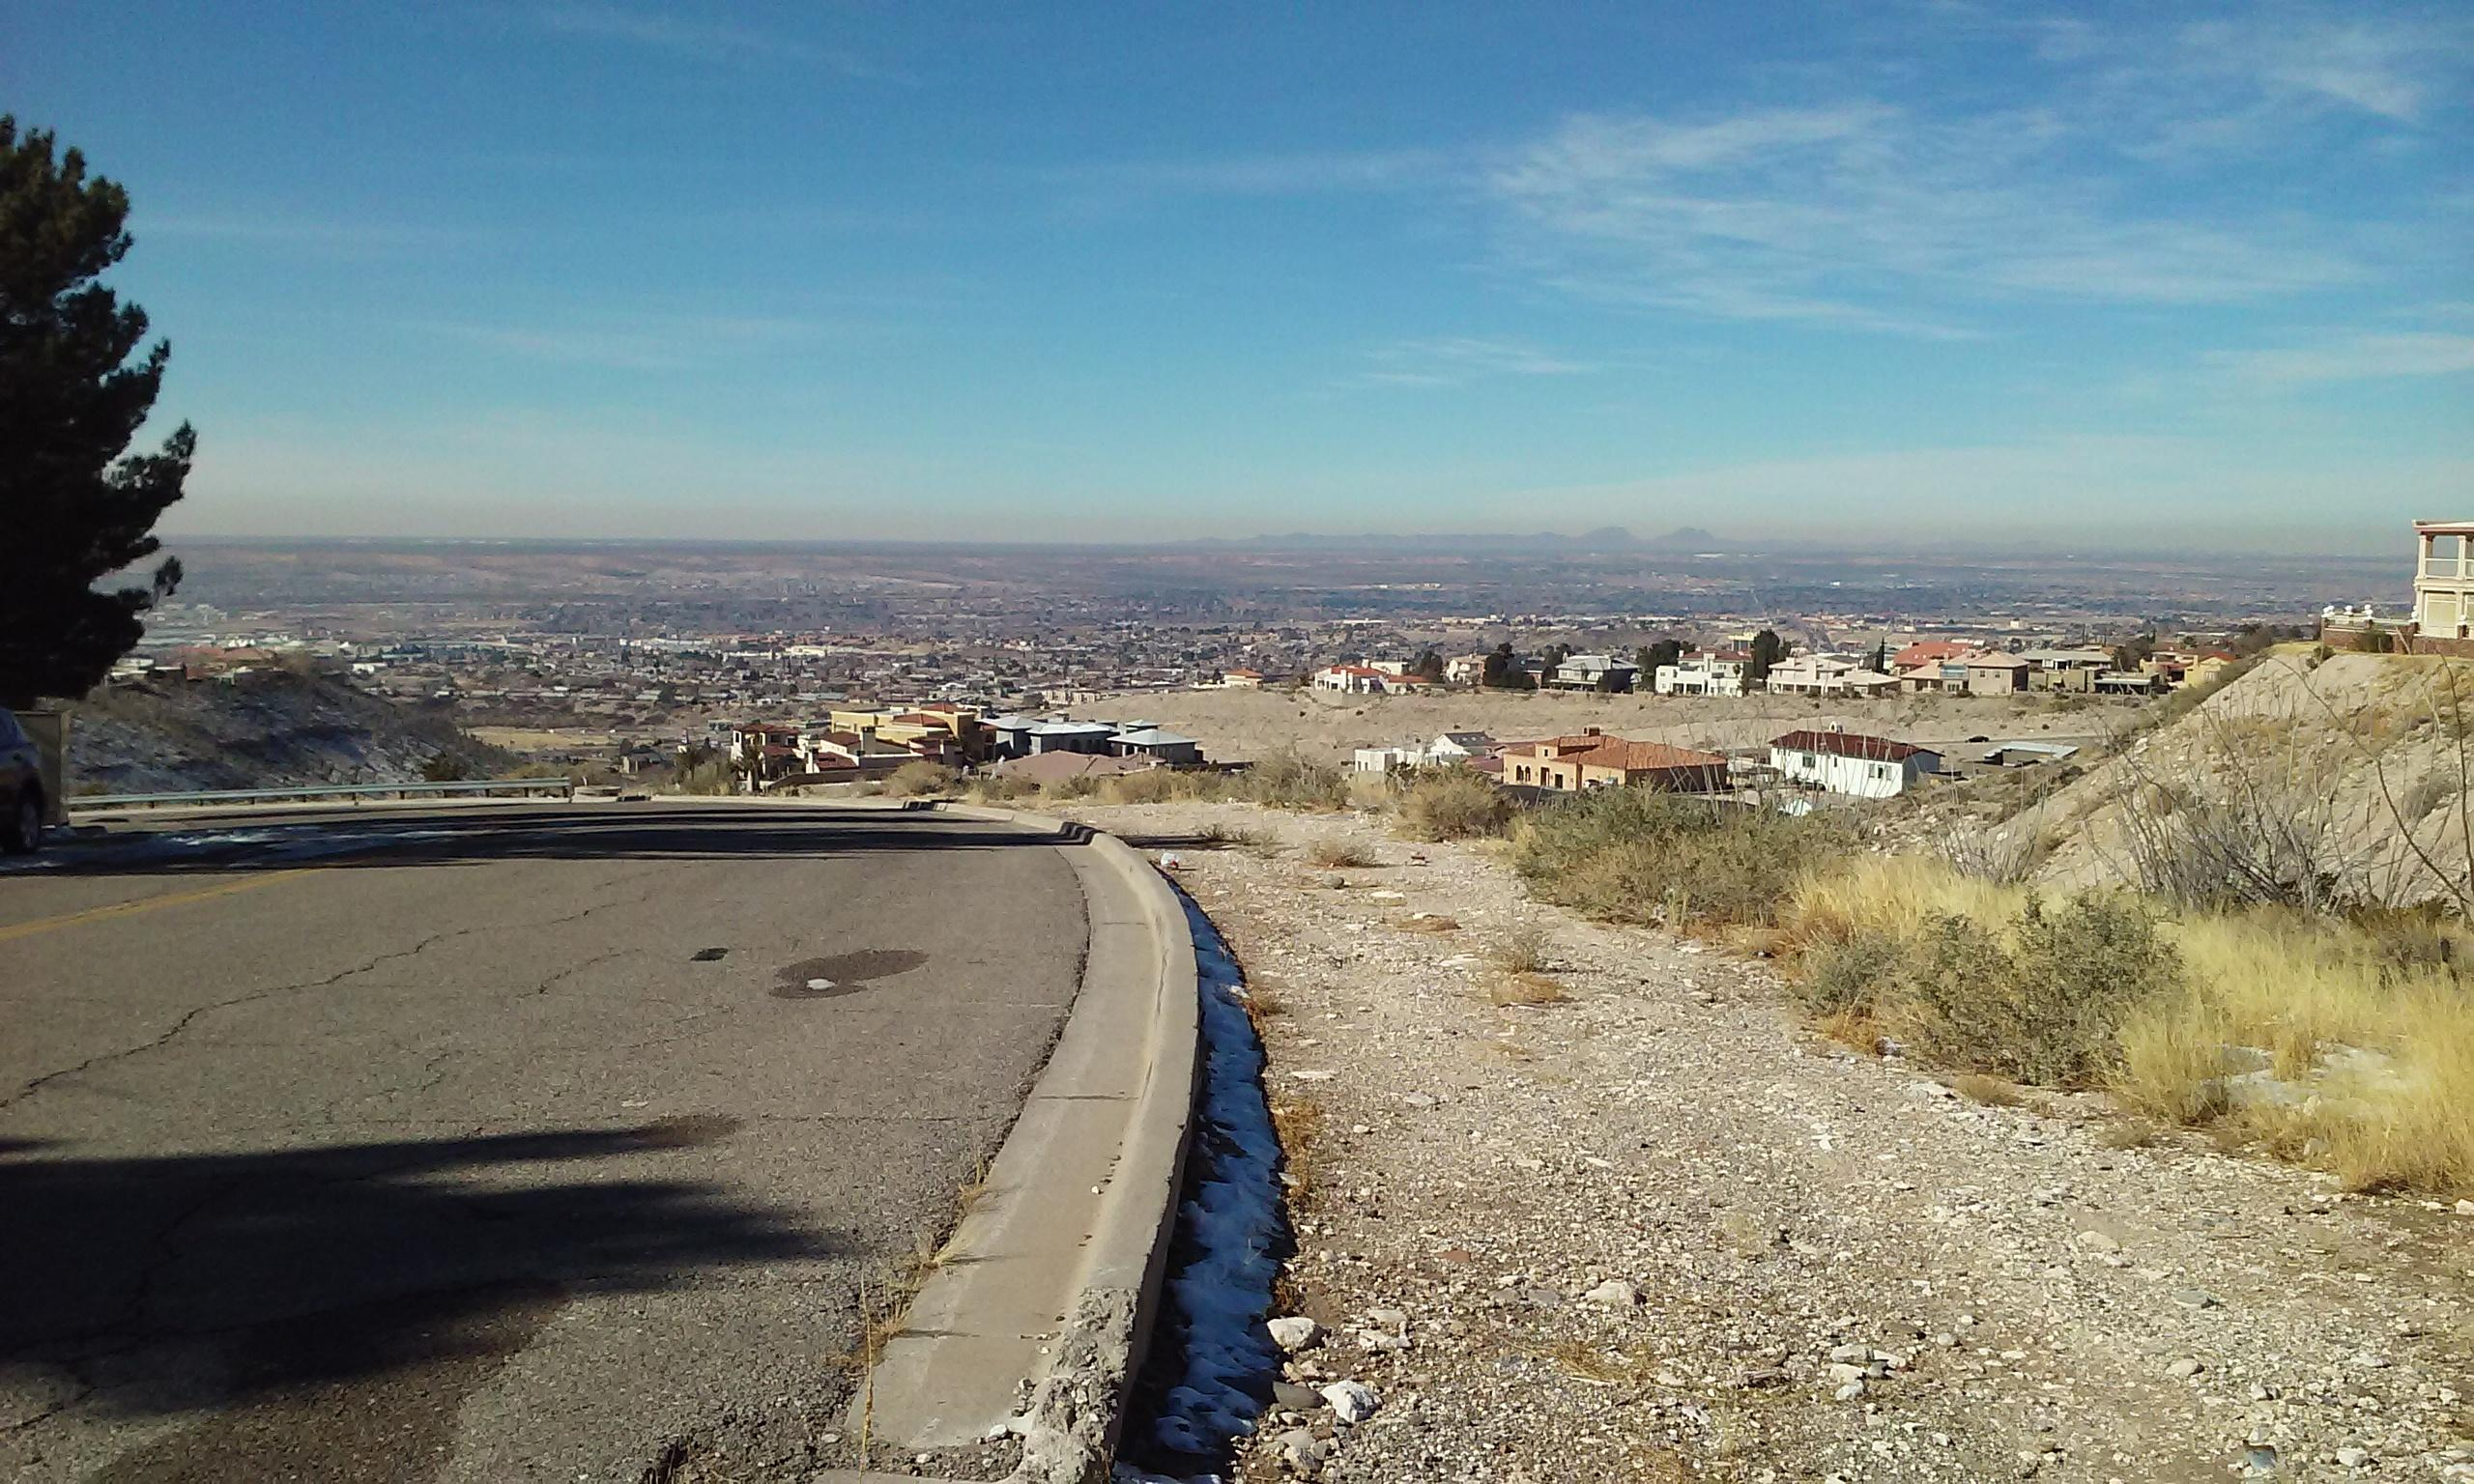 El Paso from the mountains